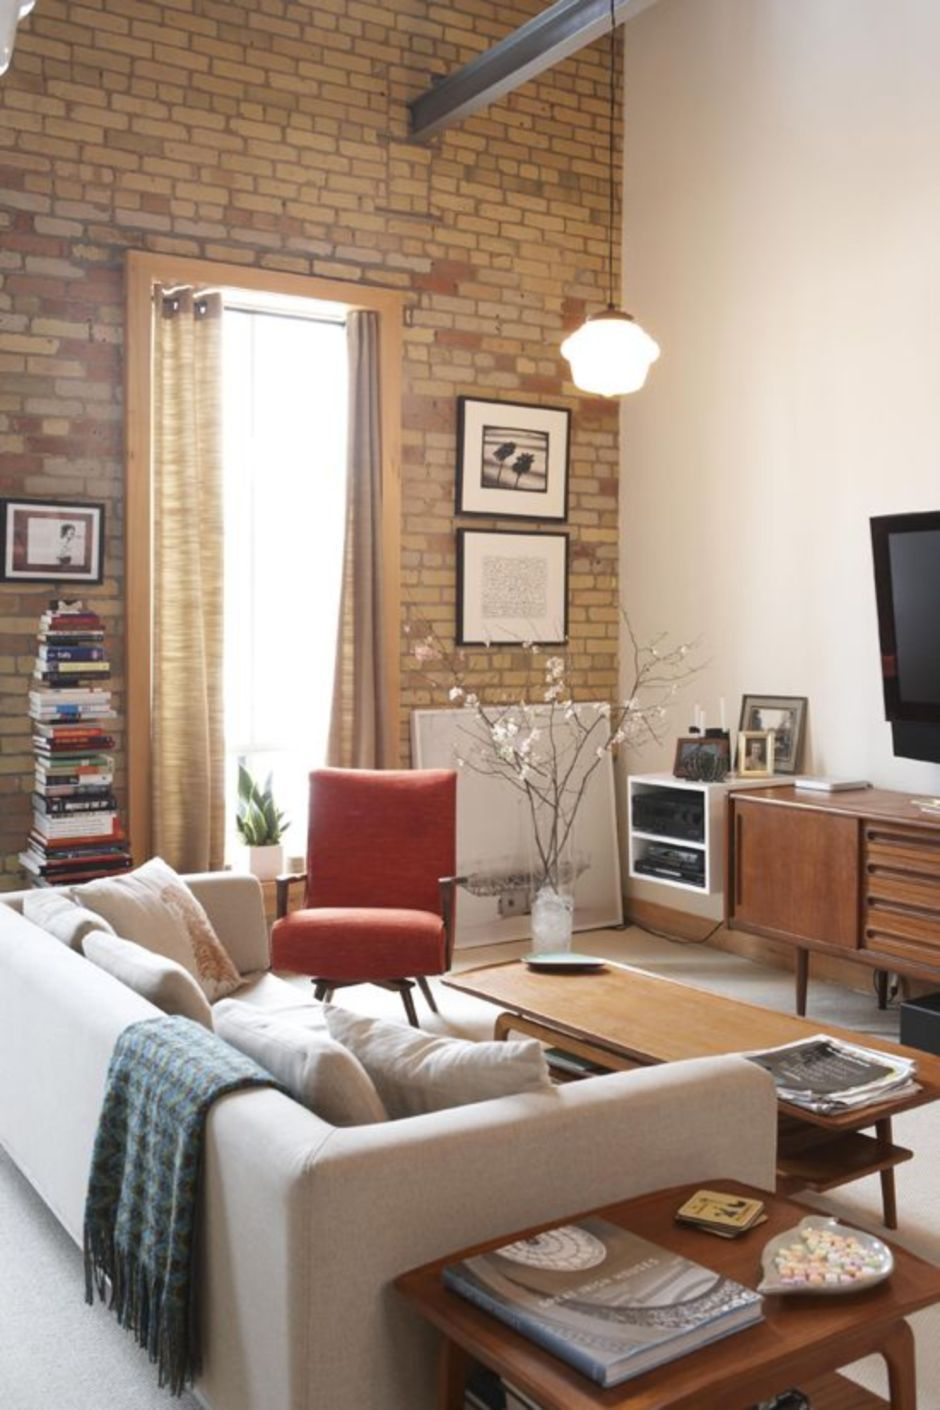 Fascinating Exposed Brick Wall For Living Room 23 Deco Maison